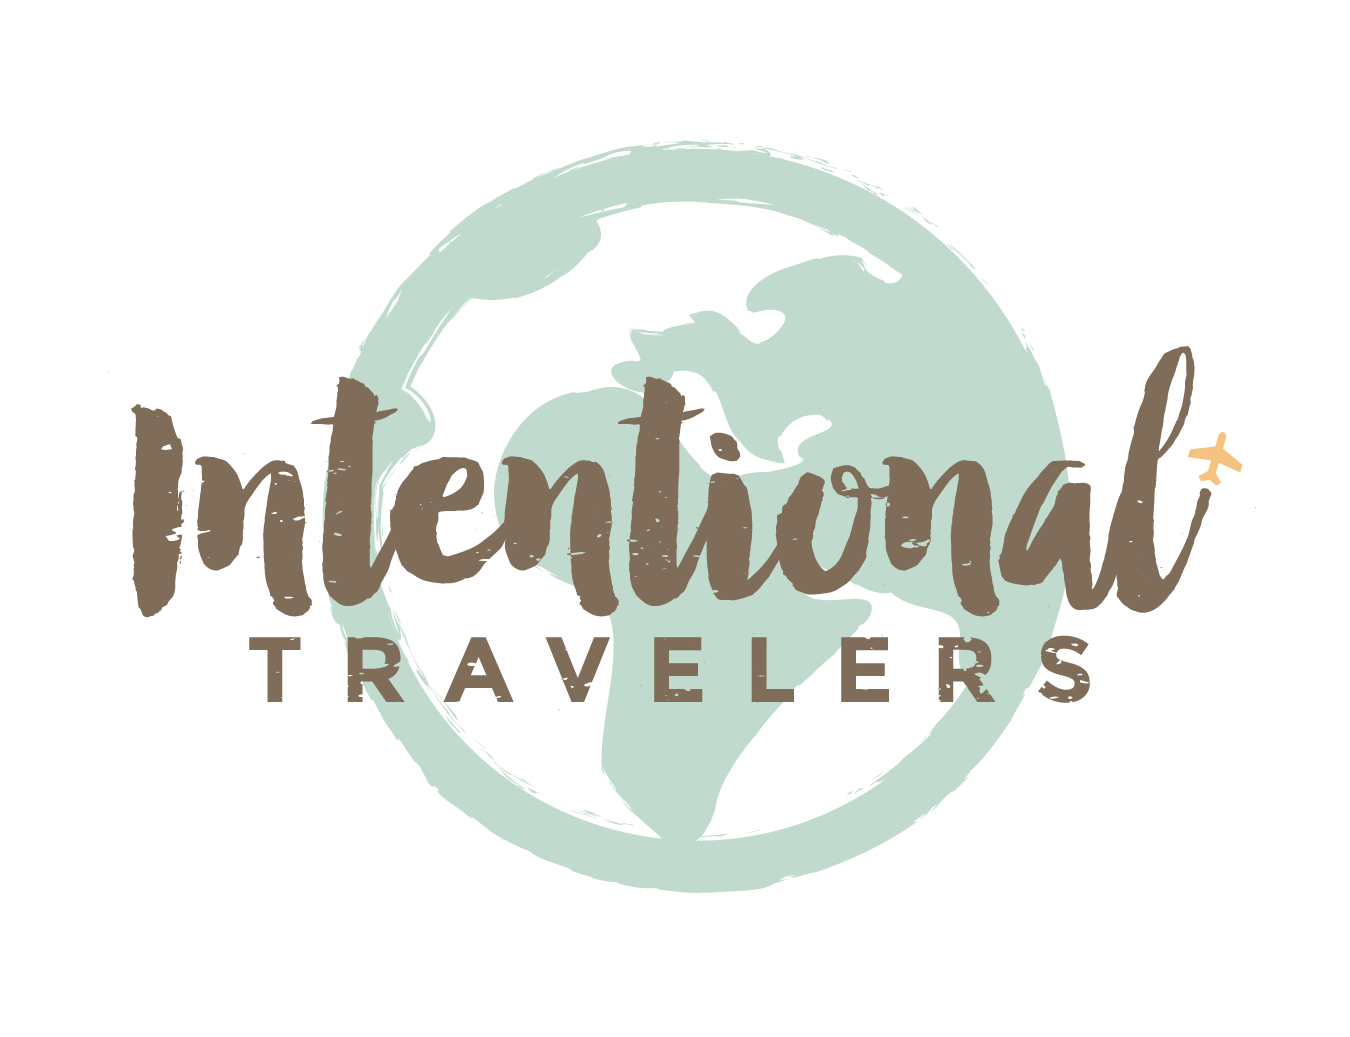 Travel png tumblr. Best currency images